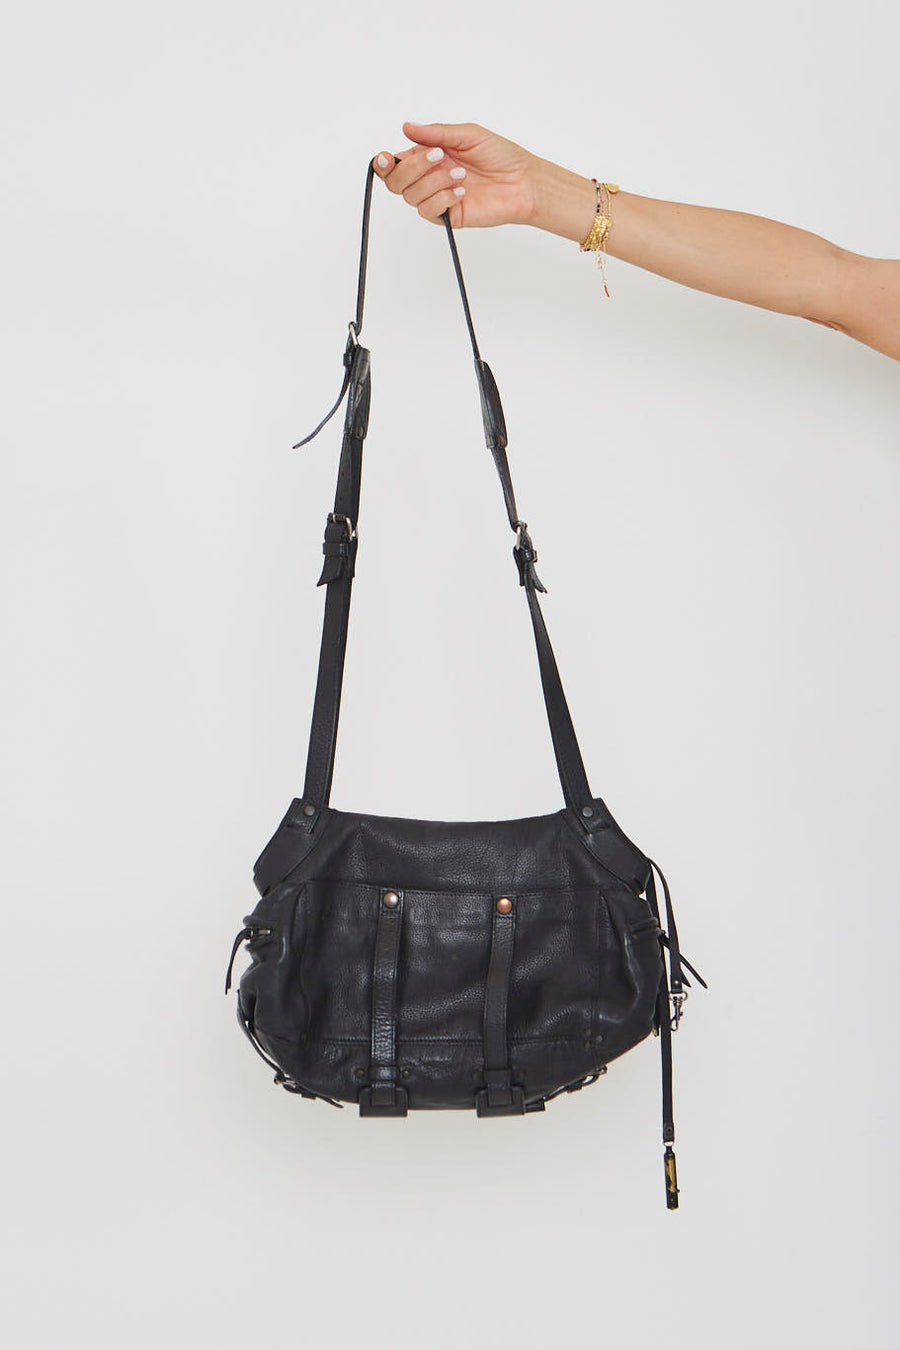 Jerome Dreyfuss Black Handbag